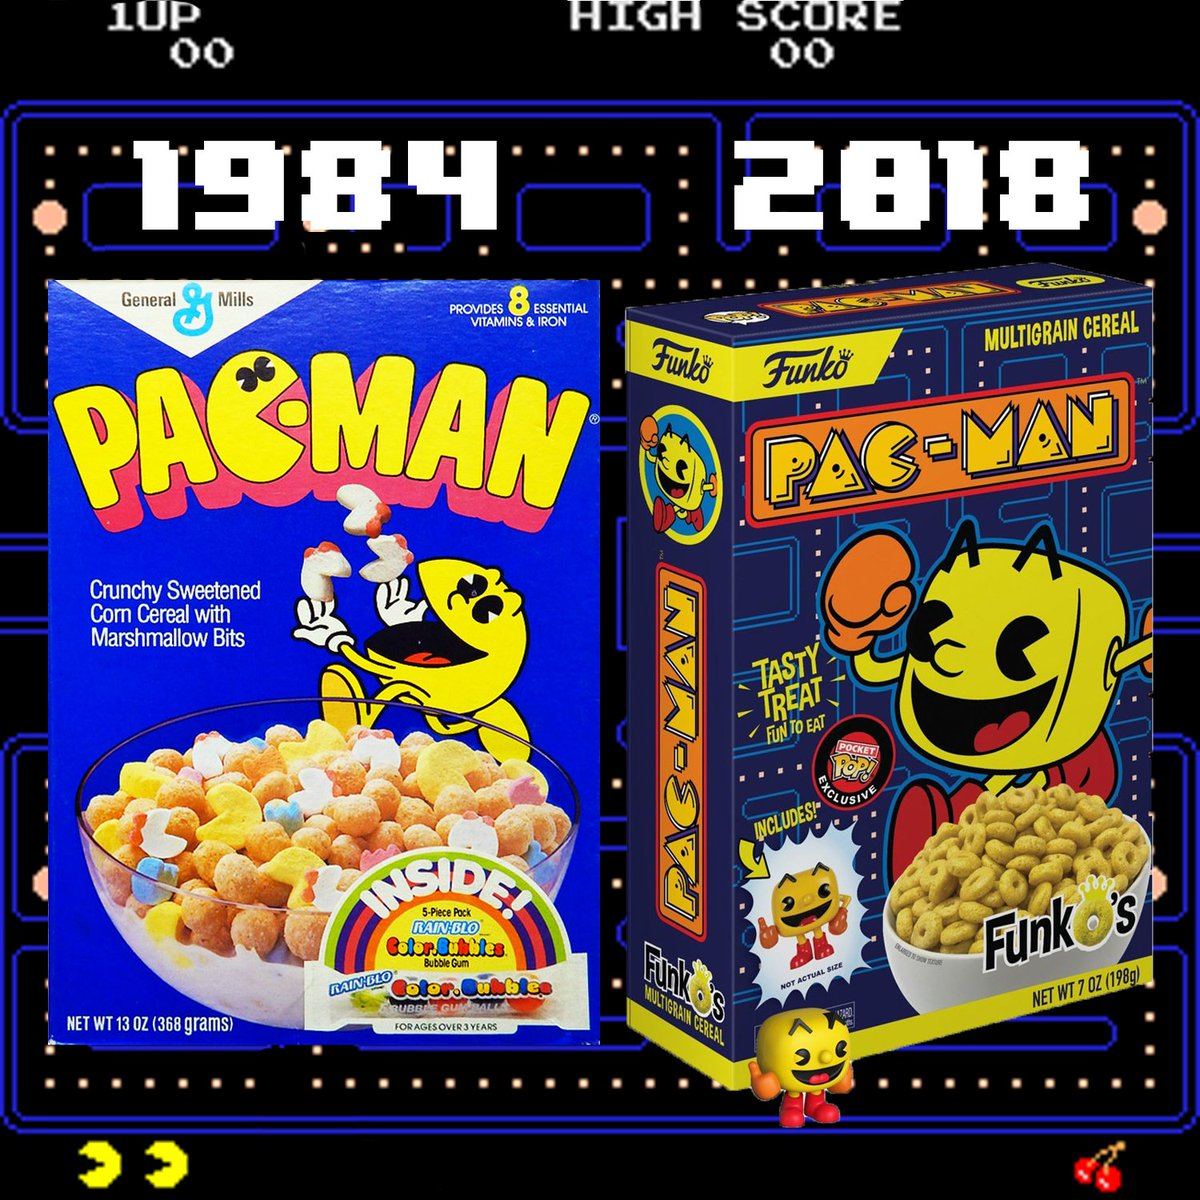 PacMan Cereal